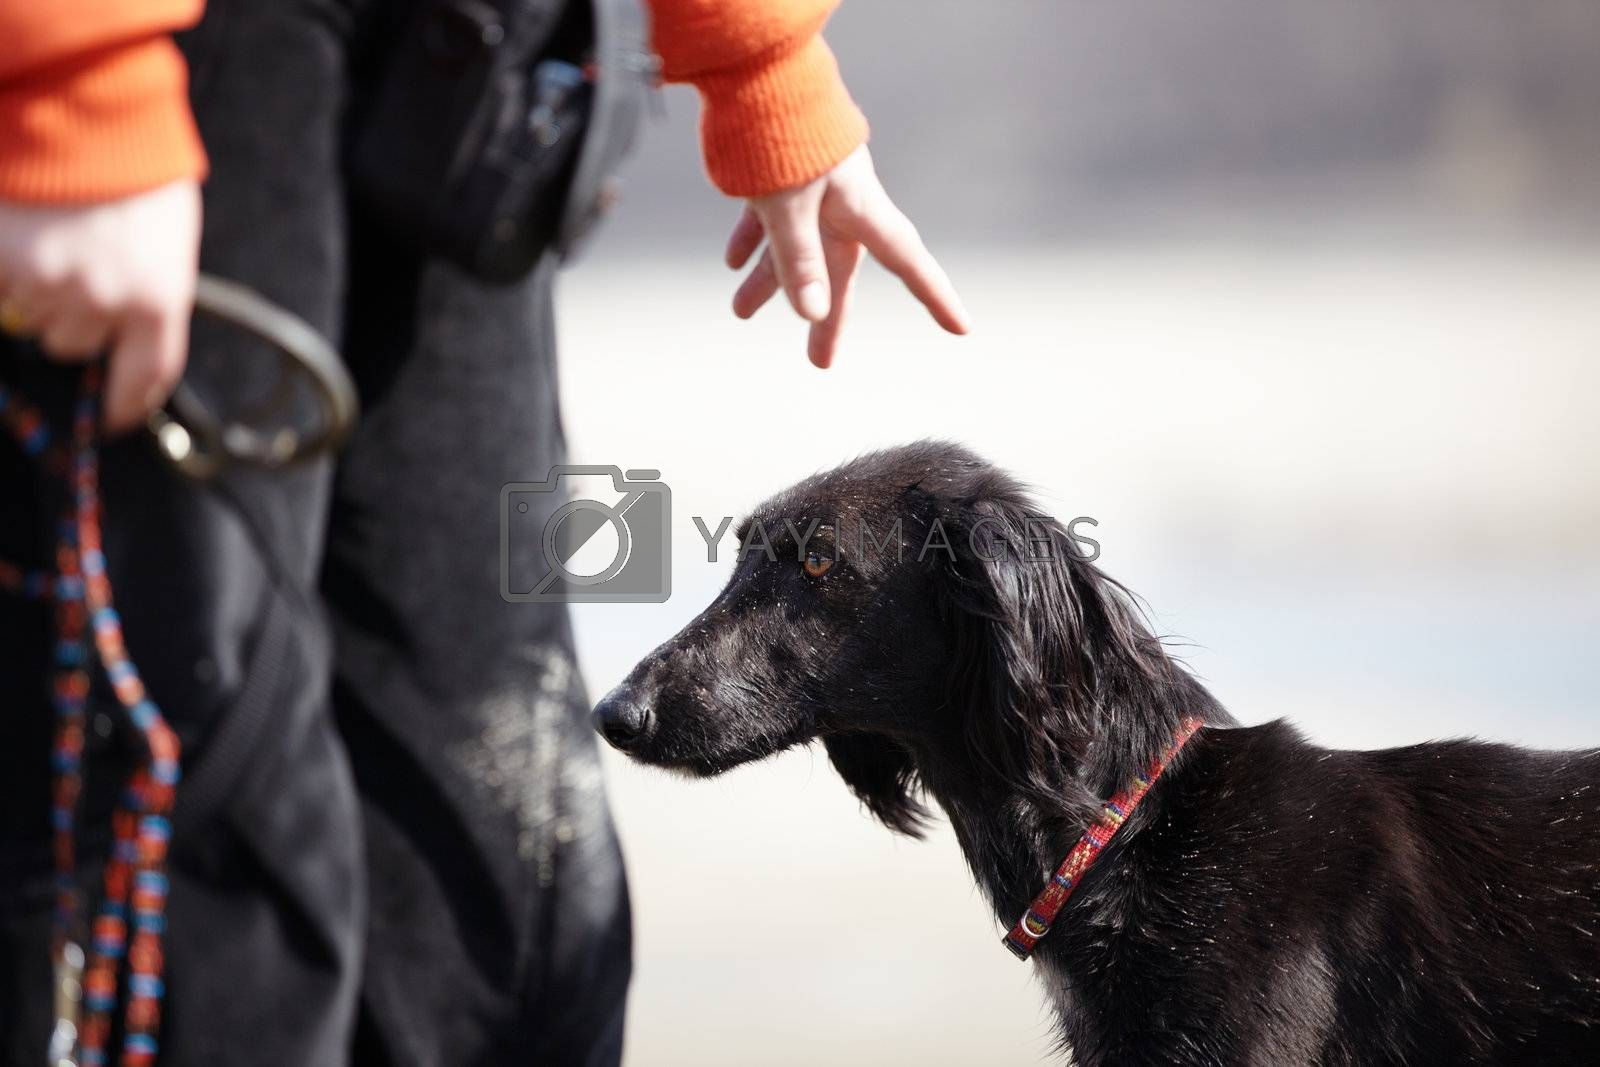 Turkmenian greyhound and trainer outdoors. Natural light and colors